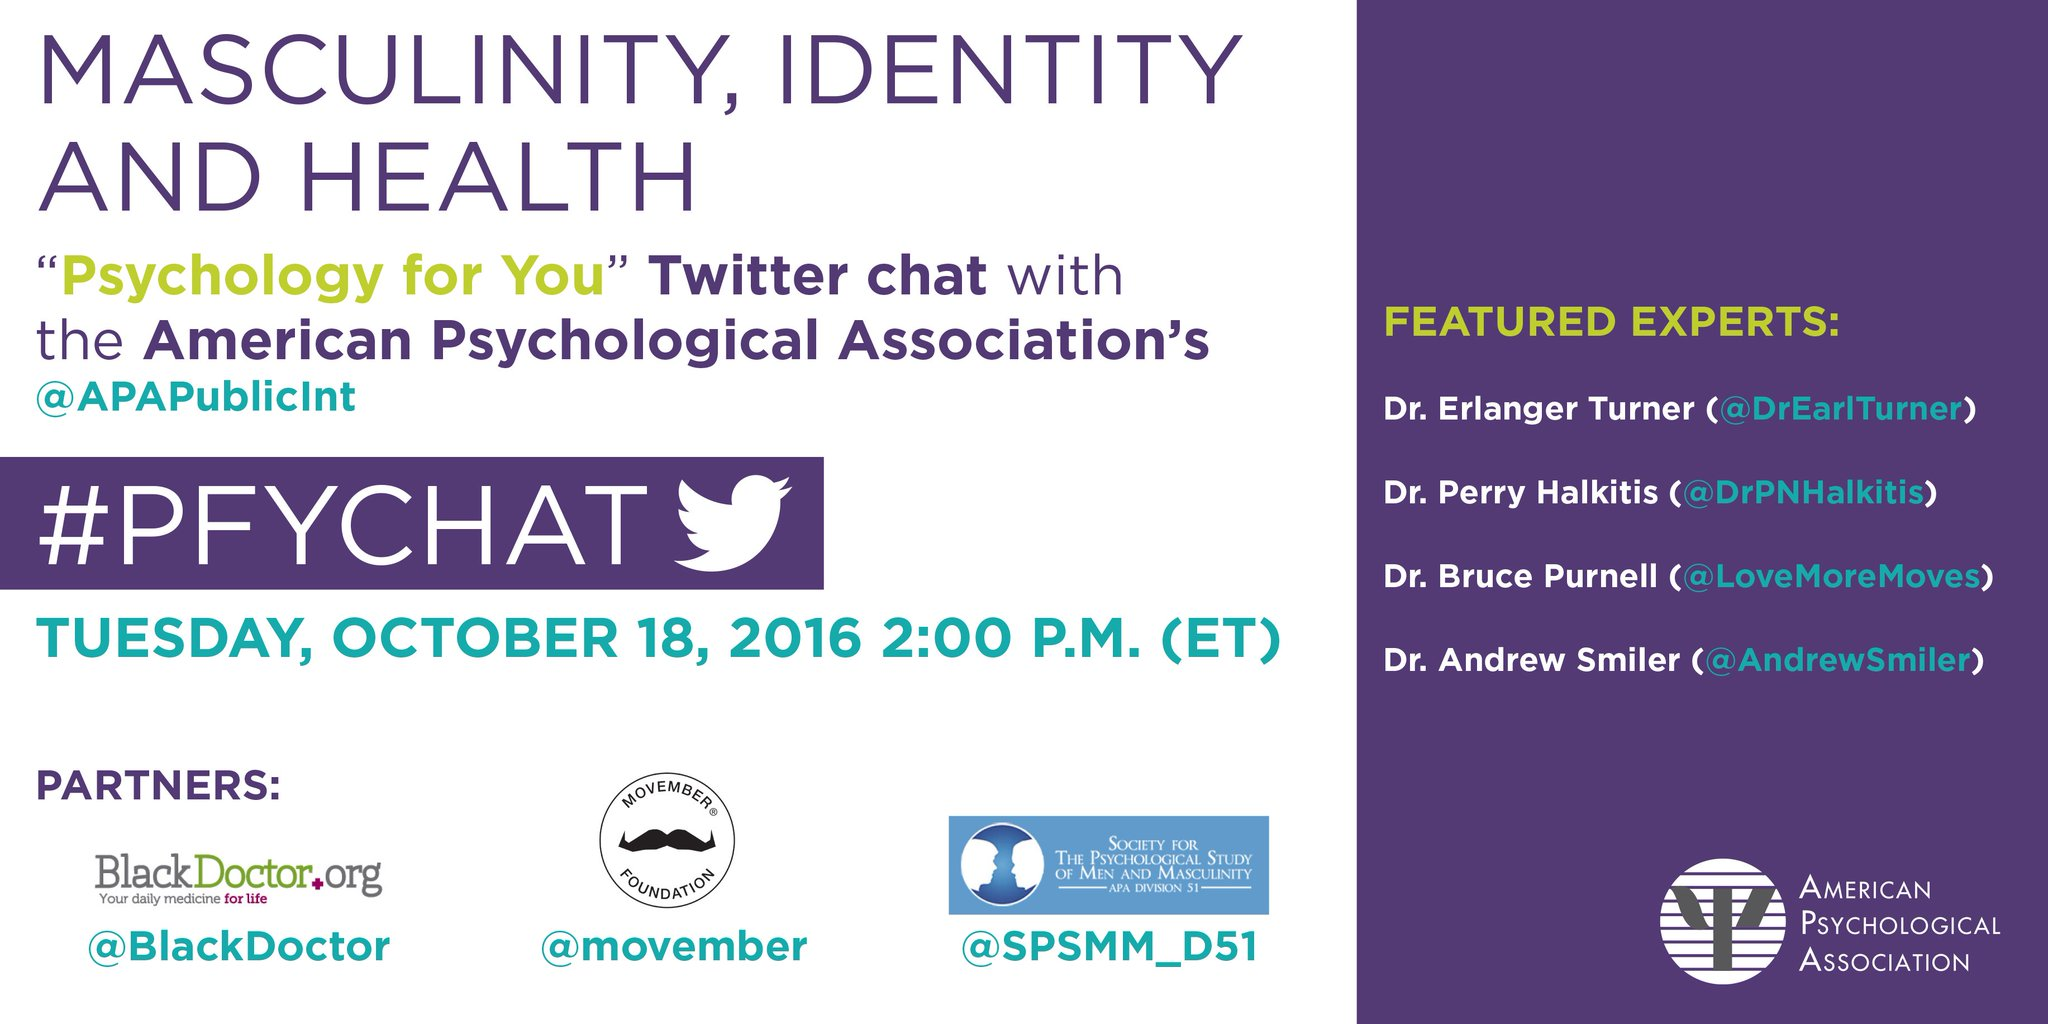 """Please join us - Oct 18 at 2PM (ET) for the #PFYchat on """"masculinity, identity & health"""" with ptnrs @BlackDoctor, @Movember and @SPSMM_D51 https://t.co/WmJ3qxoKi1"""